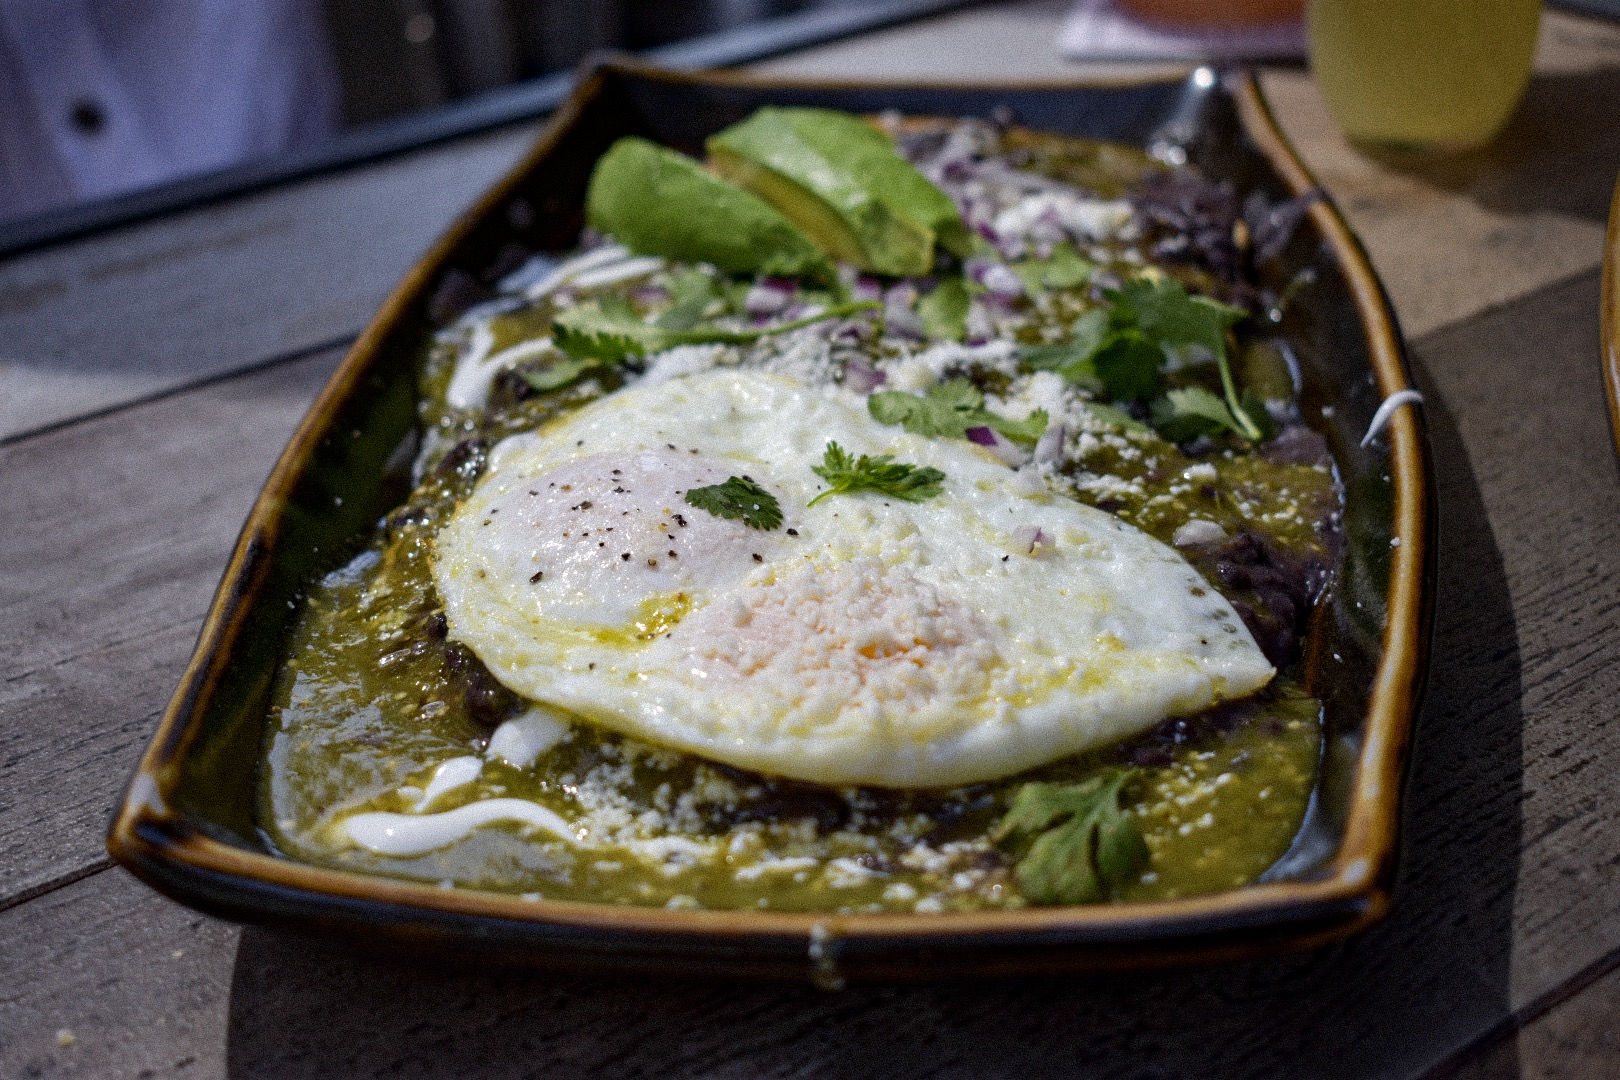 biergarden encinitas huevos rancheros brunchfaced bloody mary obsessed north county.jpg